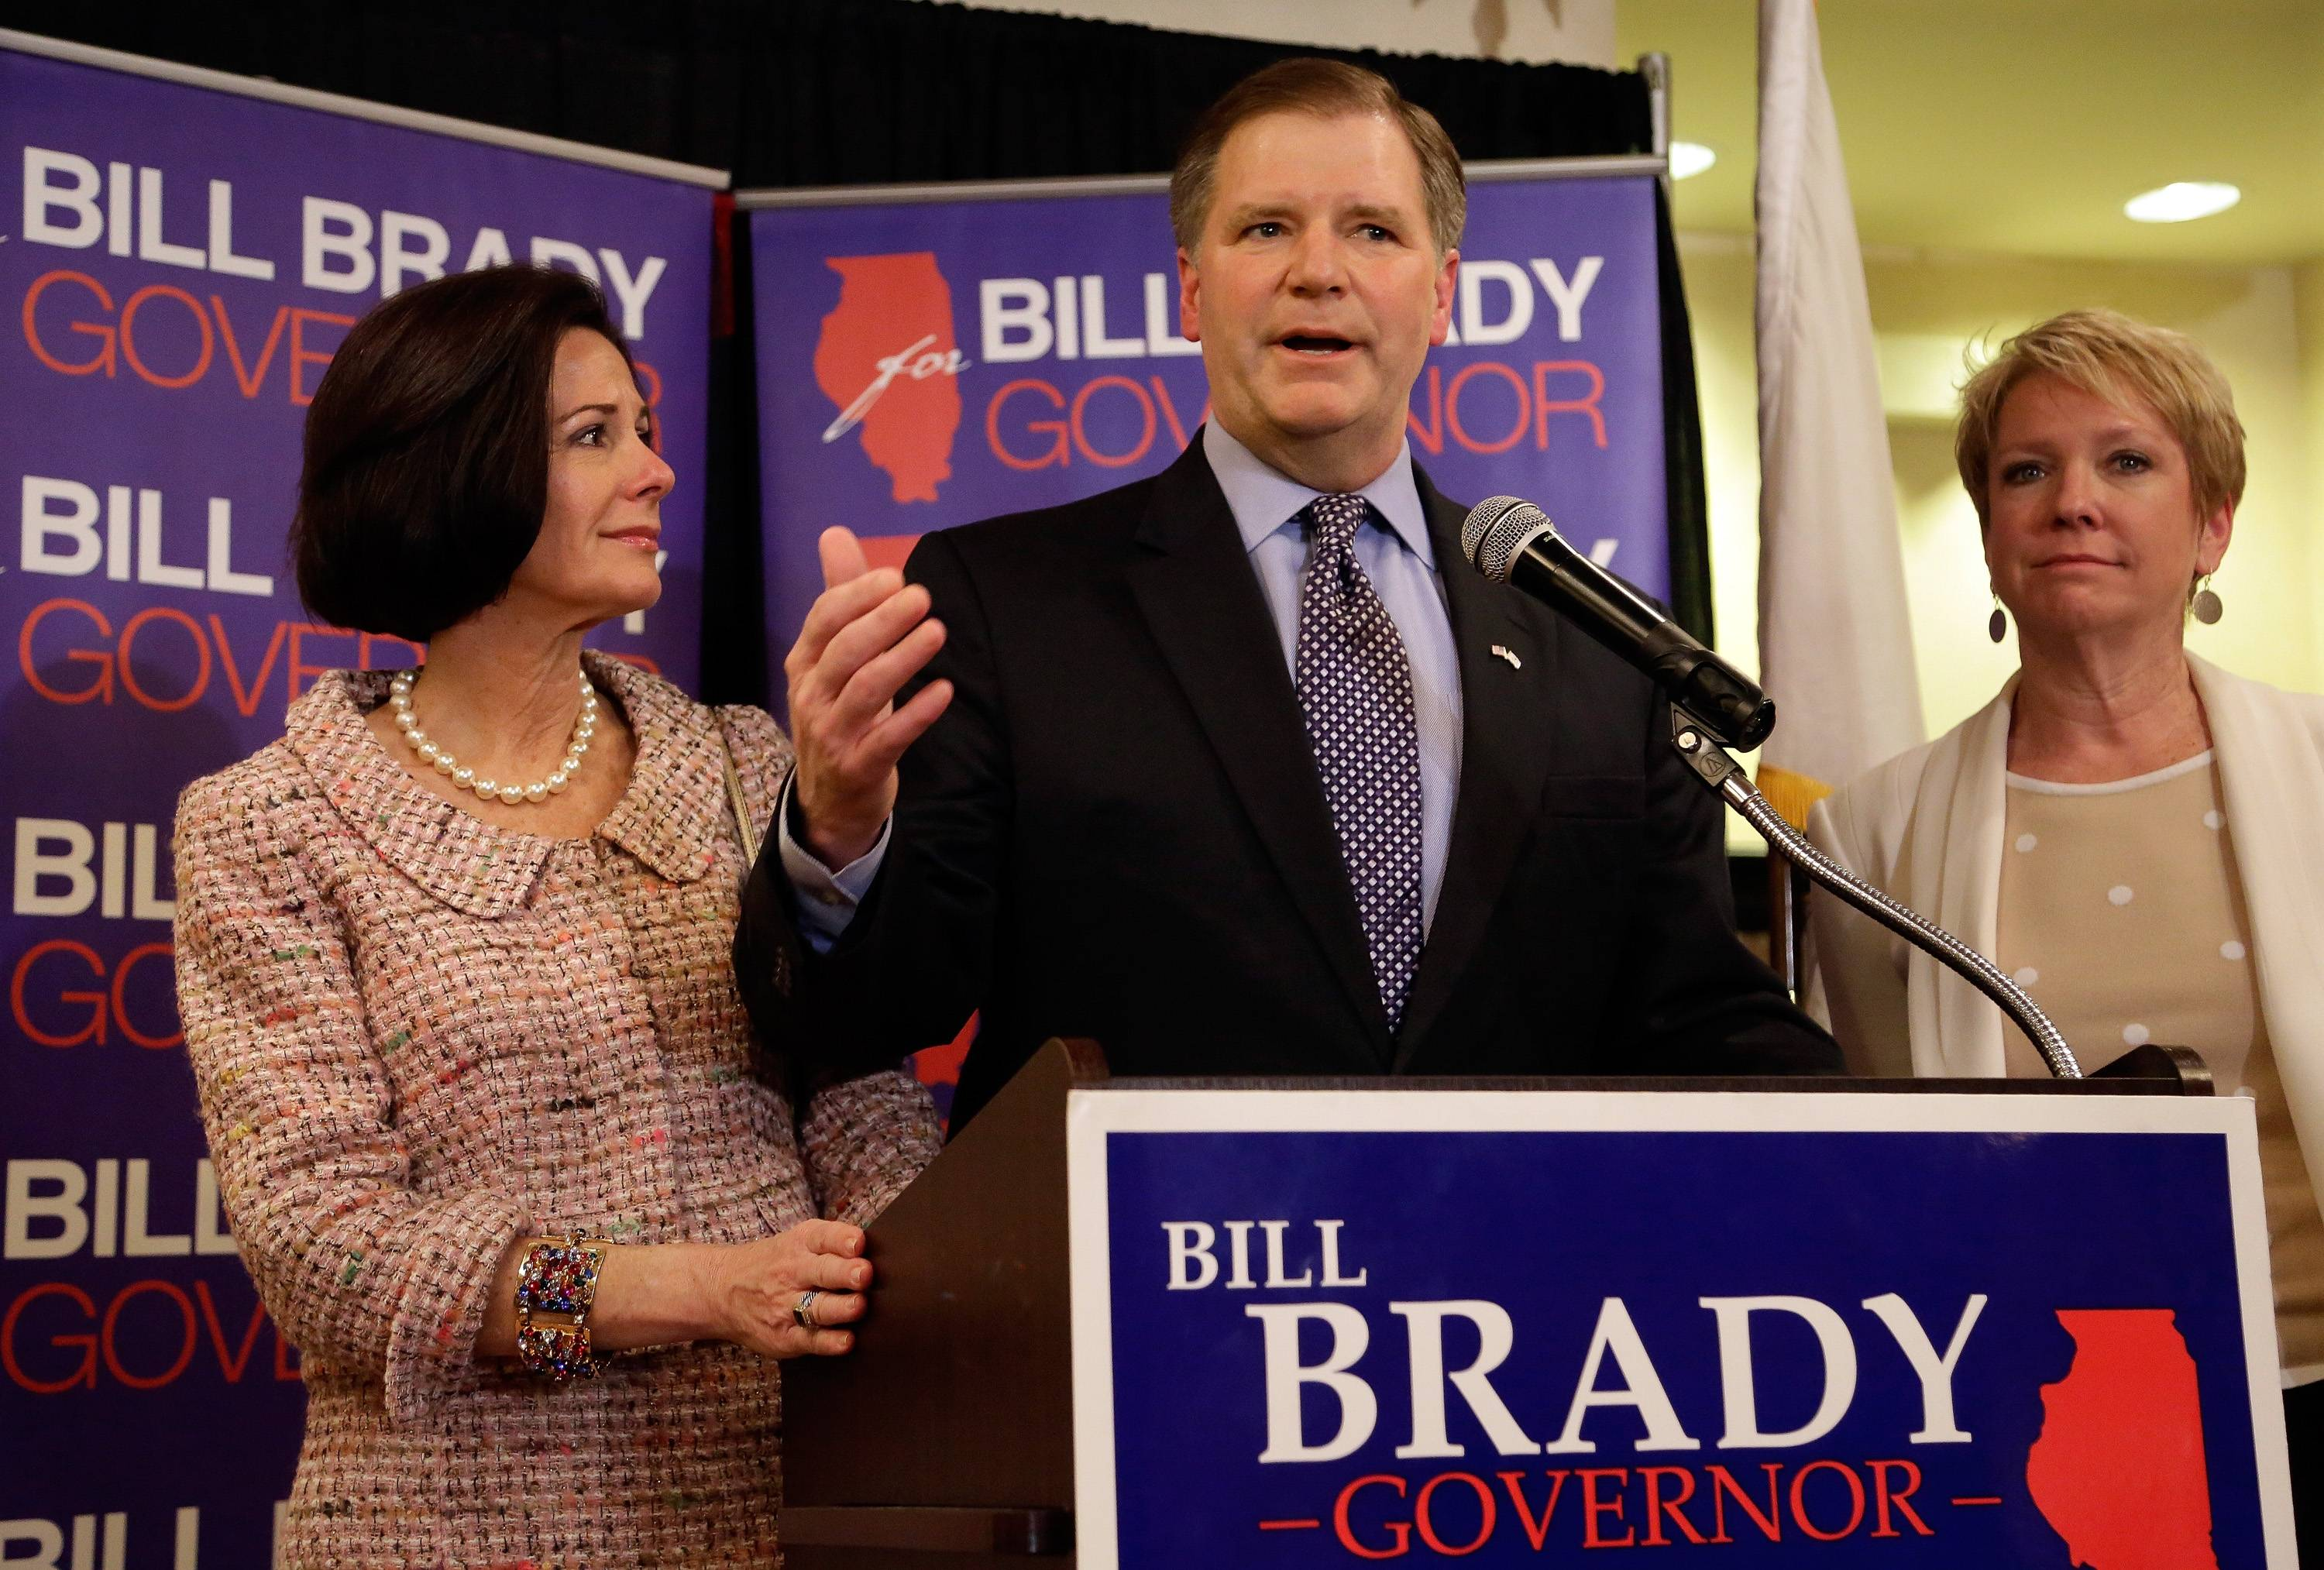 Illinois Republican gubernatorial candidate state Sen. Bill Brady, center, concedes his primary election challenge during his election night party, Tuesday, March 18, 2014, in Bloomington, Ill.  On left is Brady's wife, Nancy, and on right is Brady's running mate lieutenant governor candidate Maria Rodriguez.